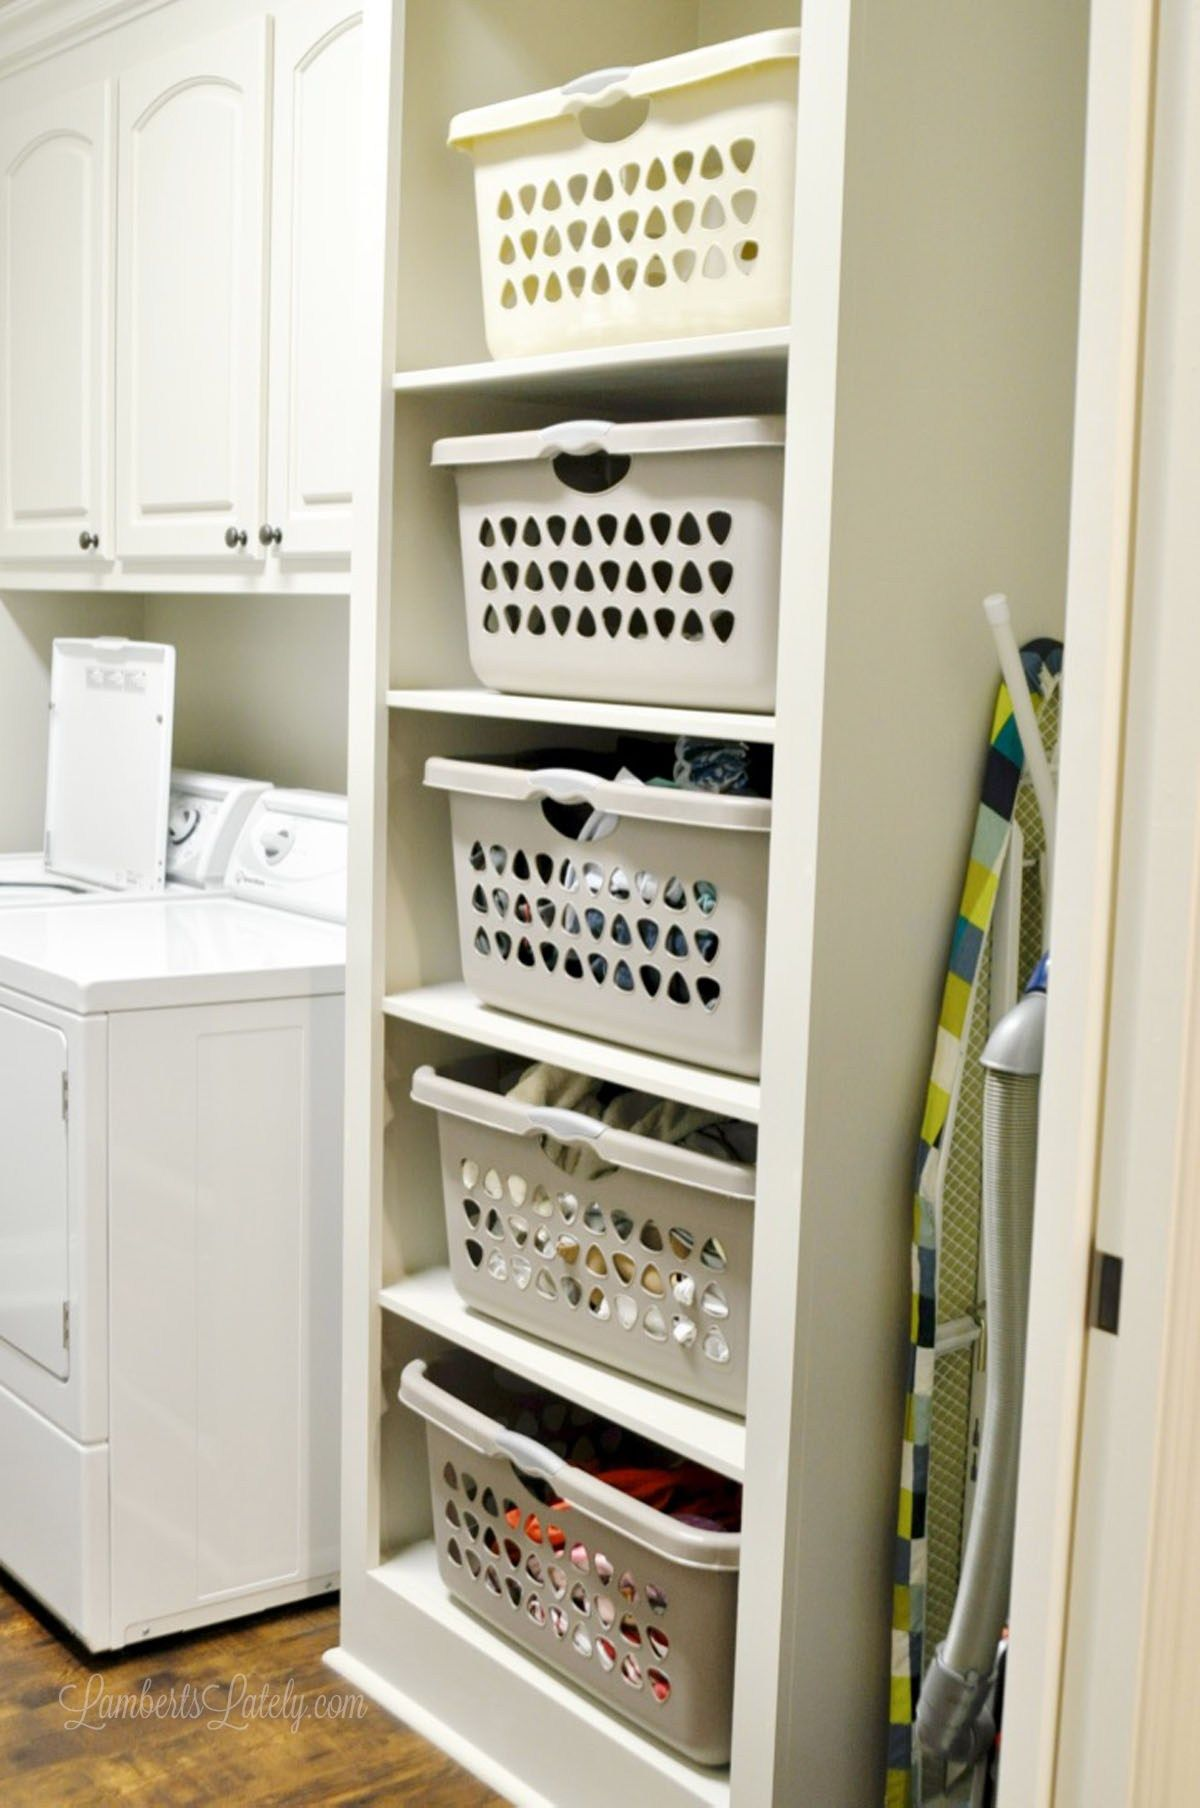 How I Created Our Life Changing Family Laundry System Rangement Maison Buanderies Idee Salle De Bain